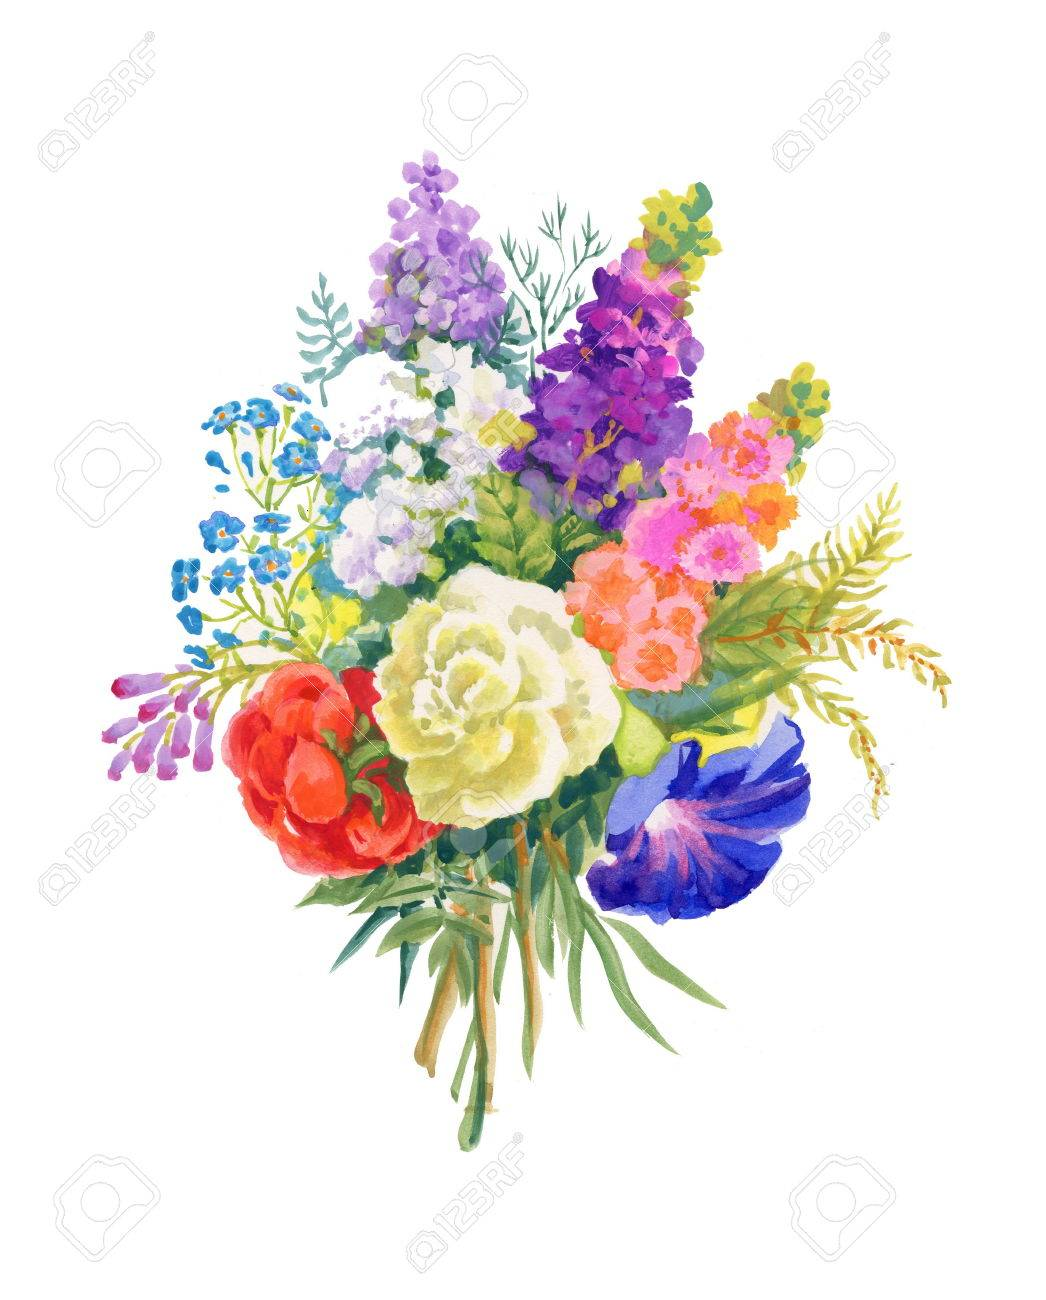 Watercolor Flowers Bouquet On White Background Royalty Free